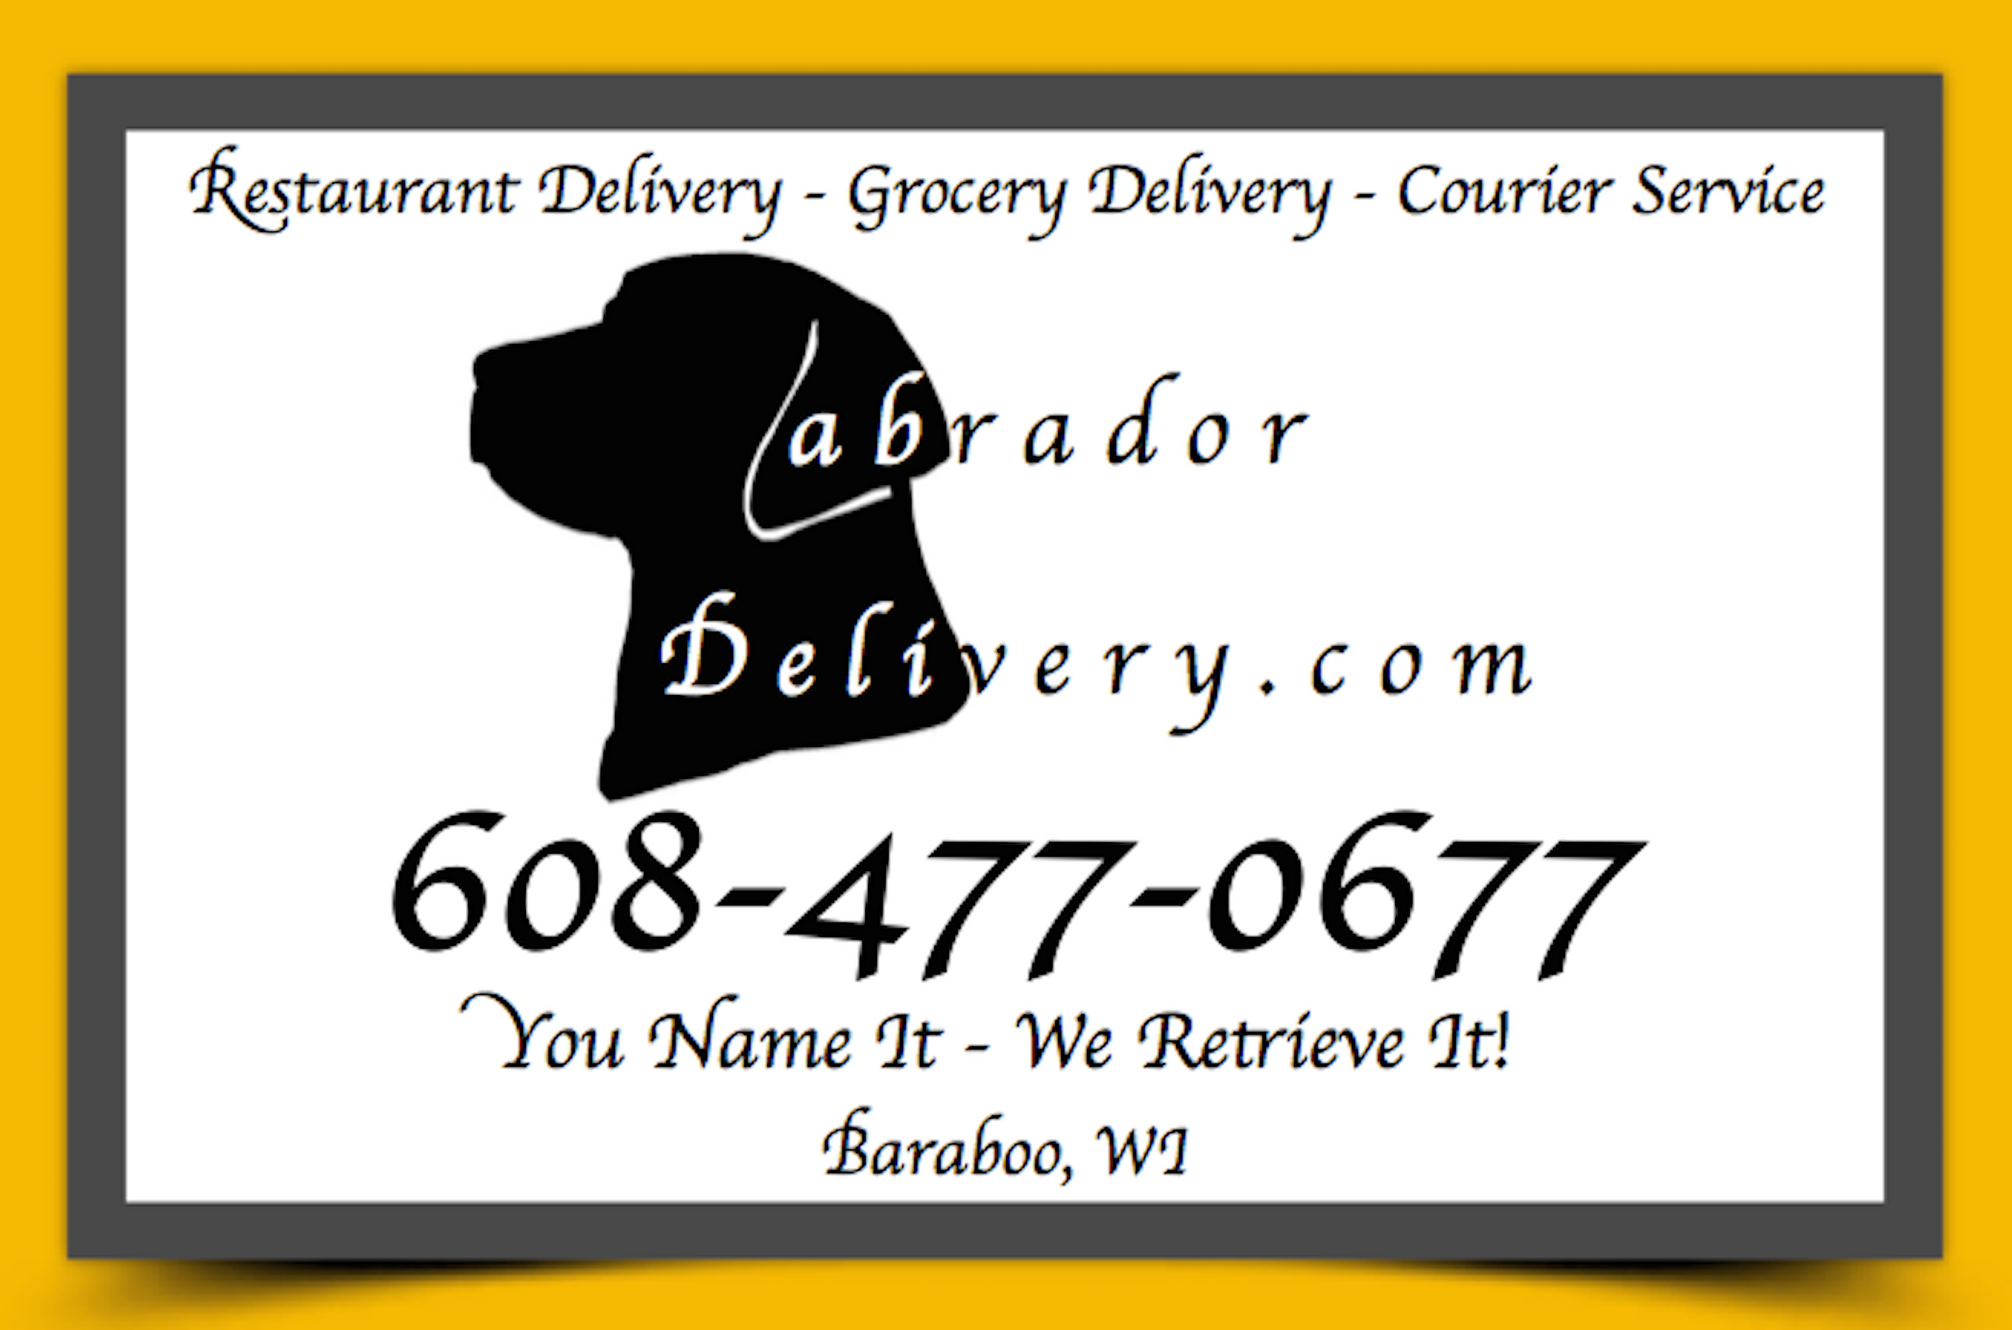 Gift Cards | Labrador Delivery Services Baraboo WI